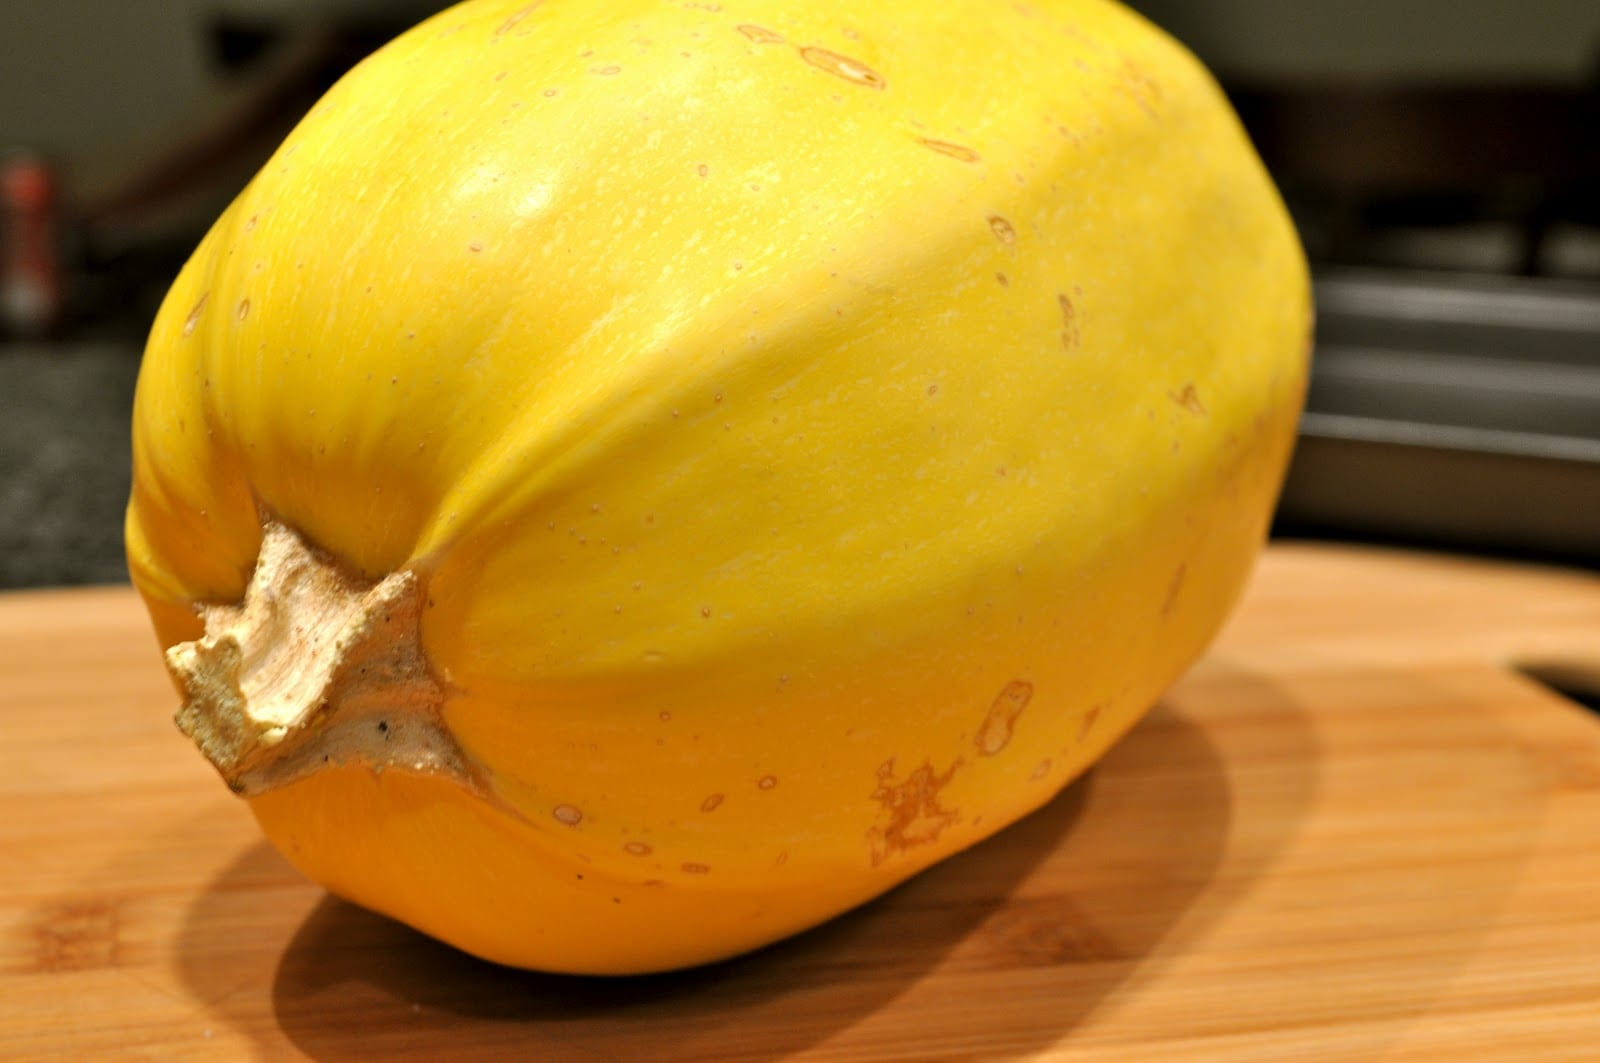 A squash sitting on top of a wooden table